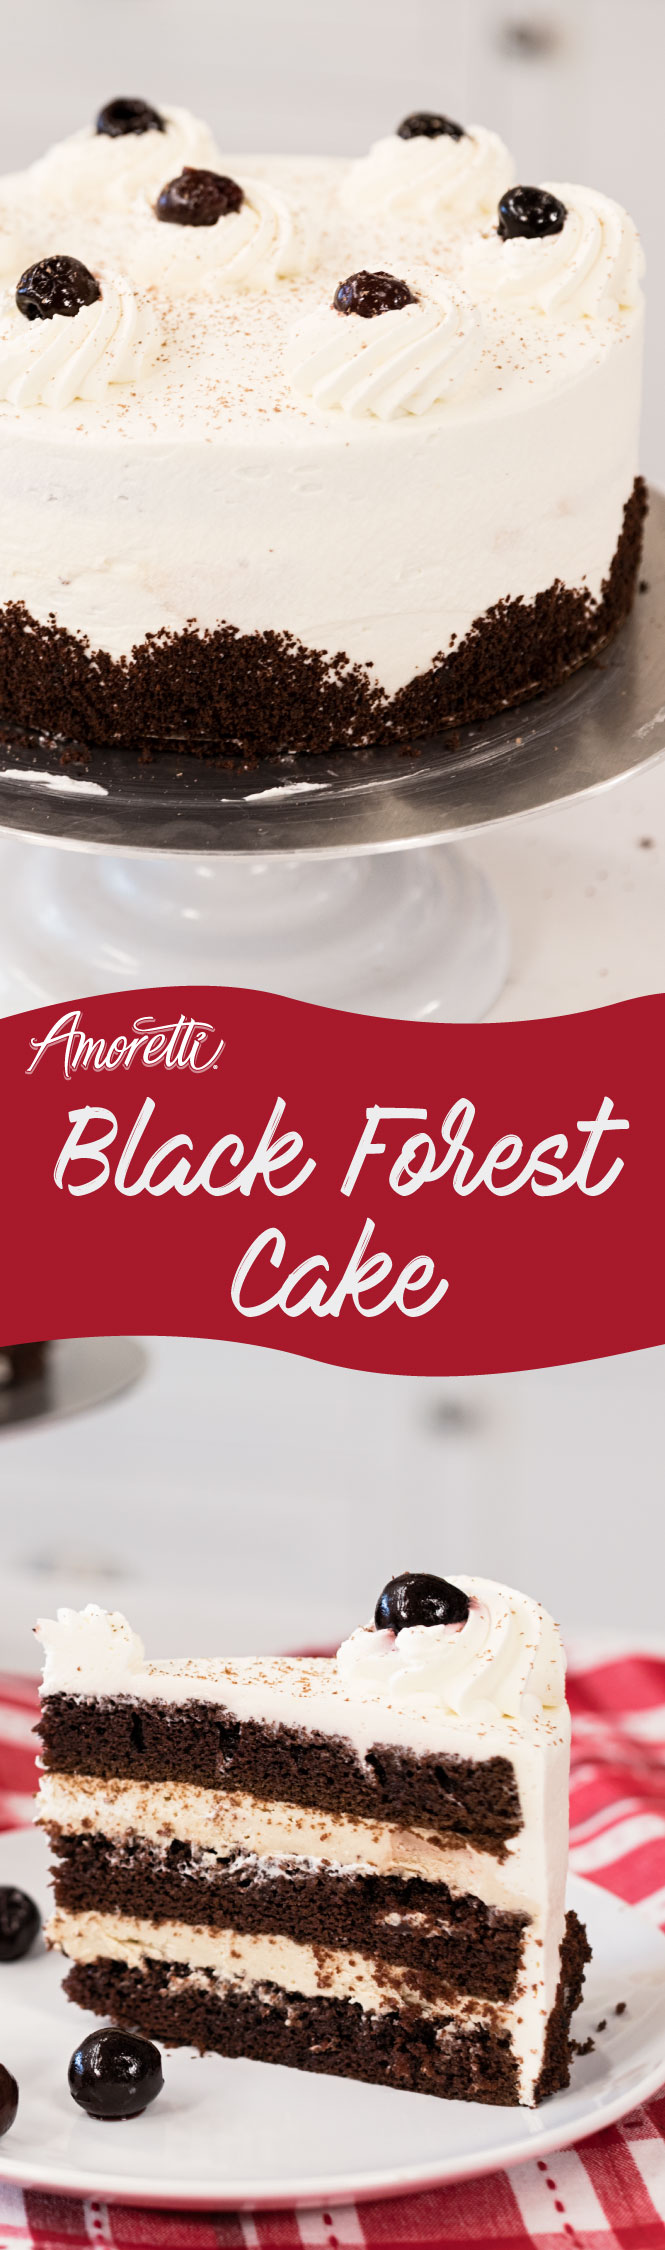 Celebrate with Black Forest Cake!